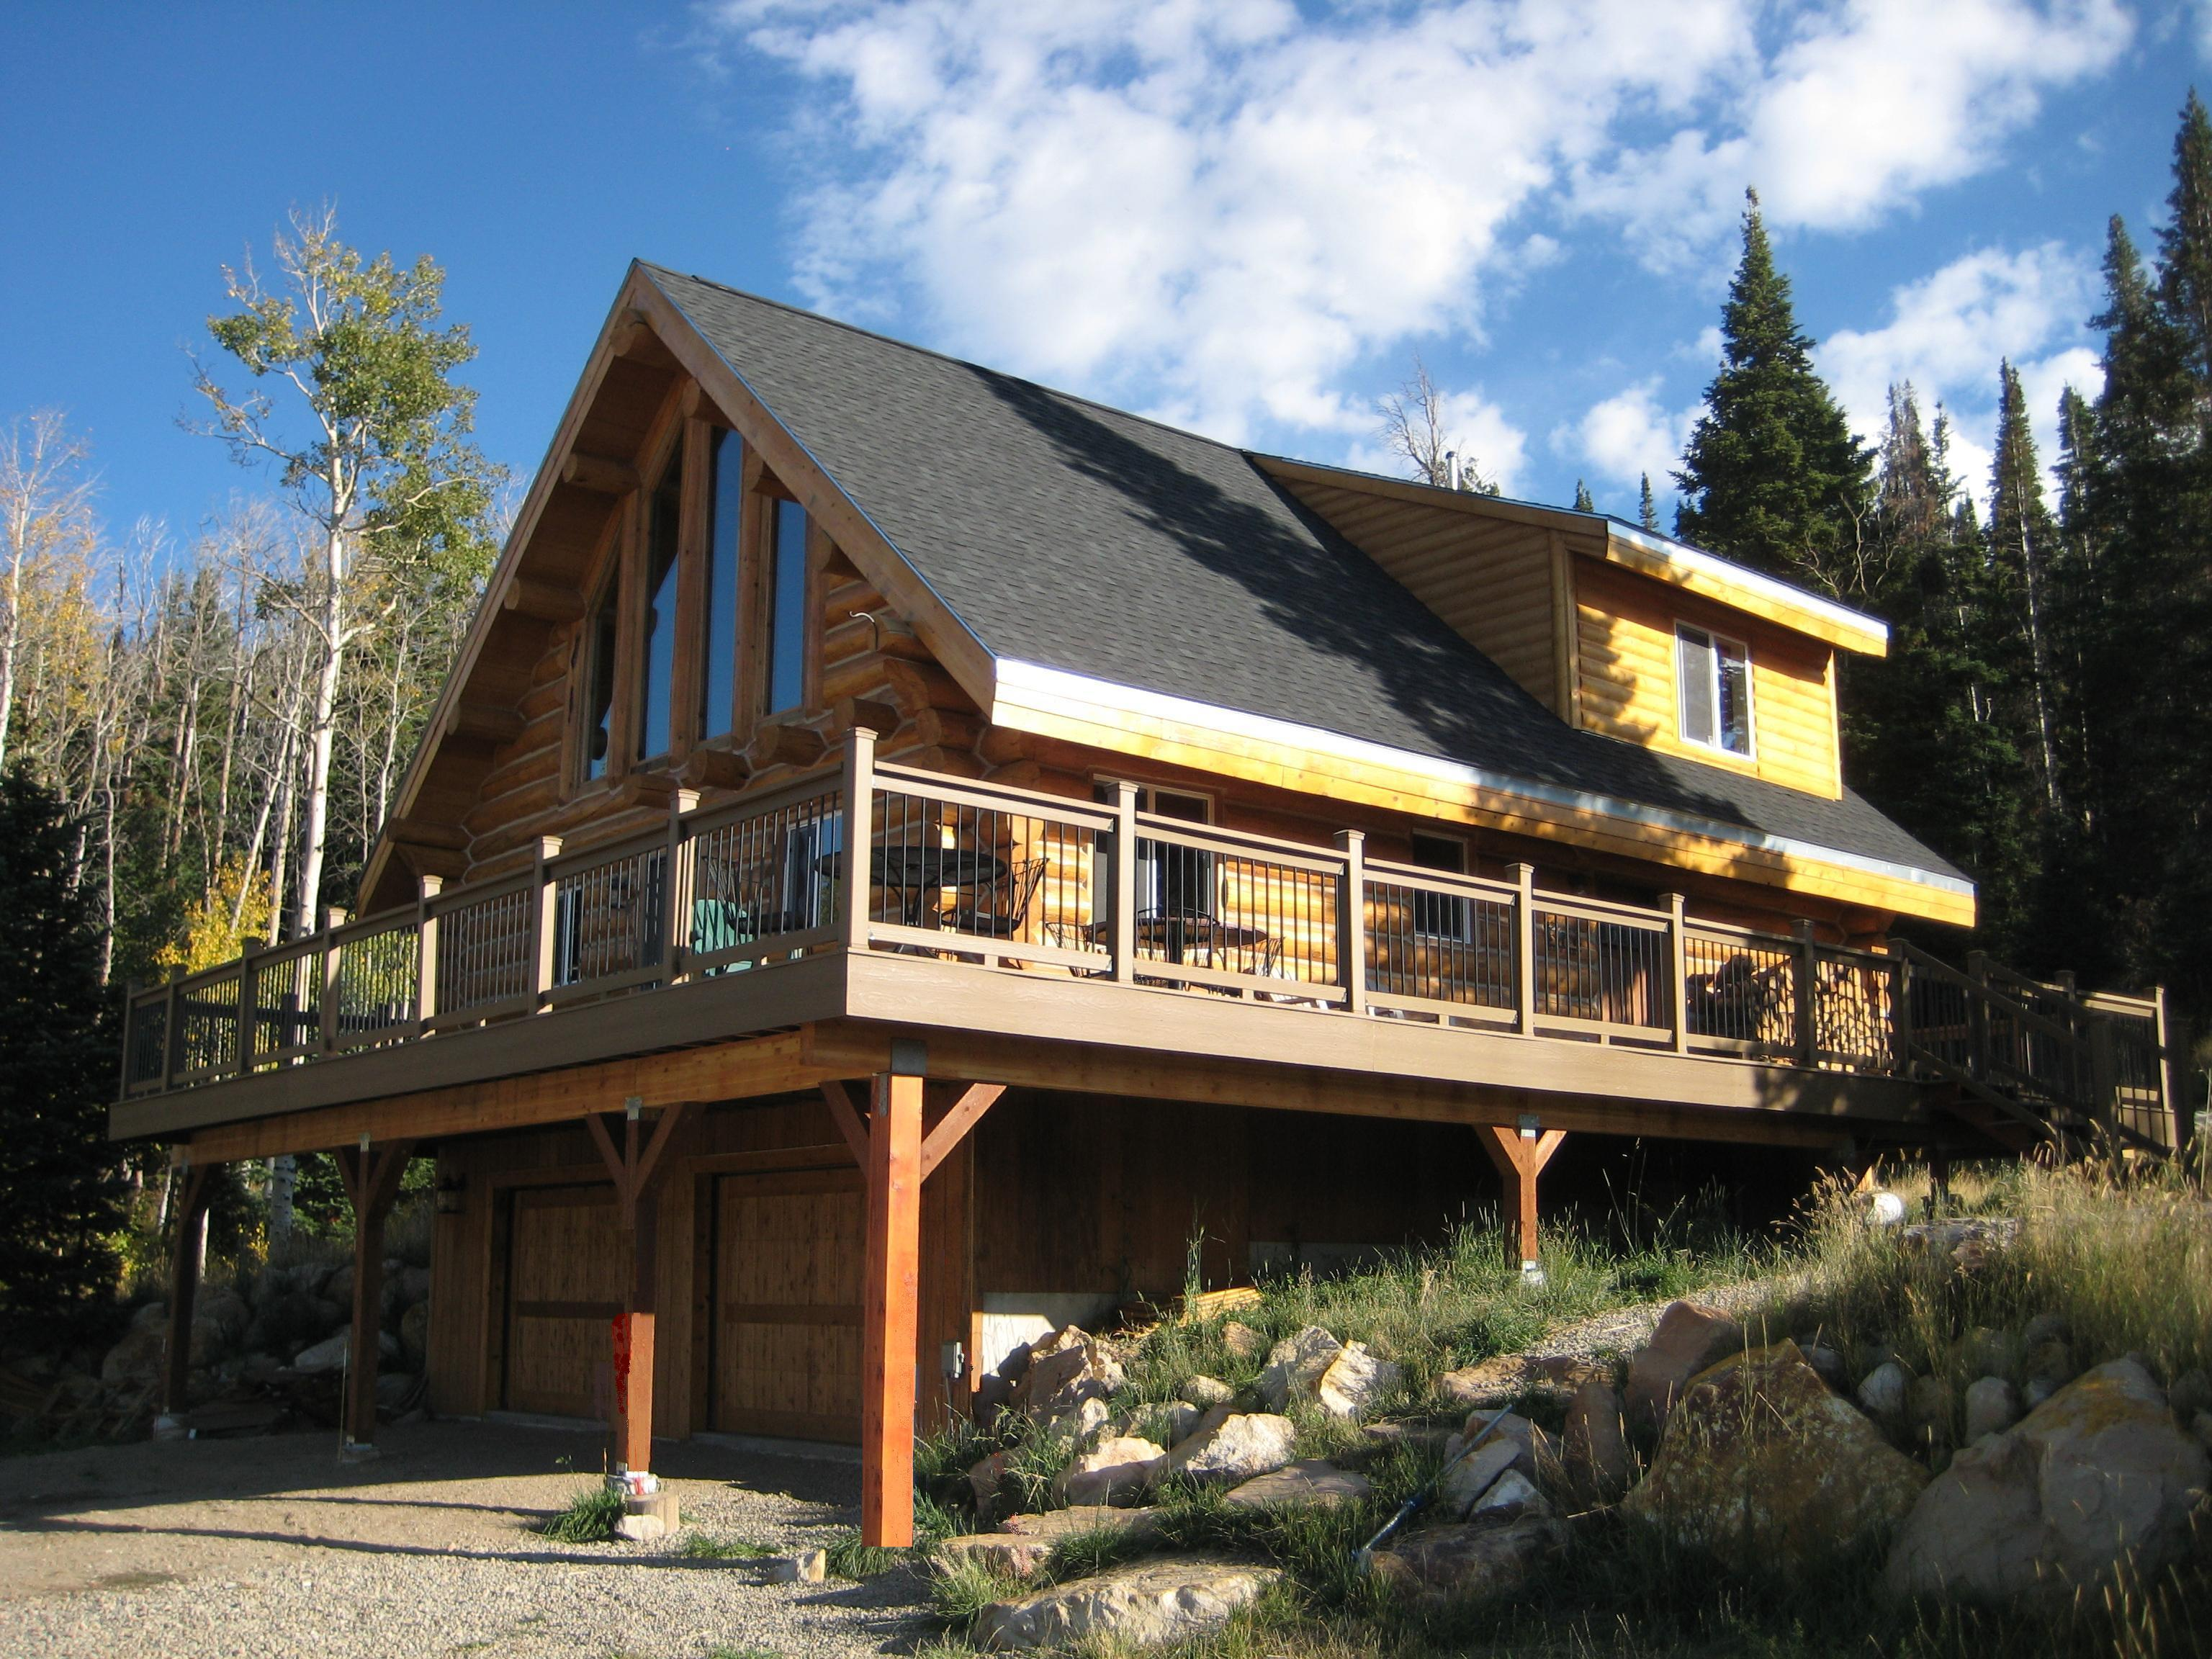 Astounding Custom Log Homes In Pagosa Springs Ute Country Homes Largest Home Design Picture Inspirations Pitcheantrous